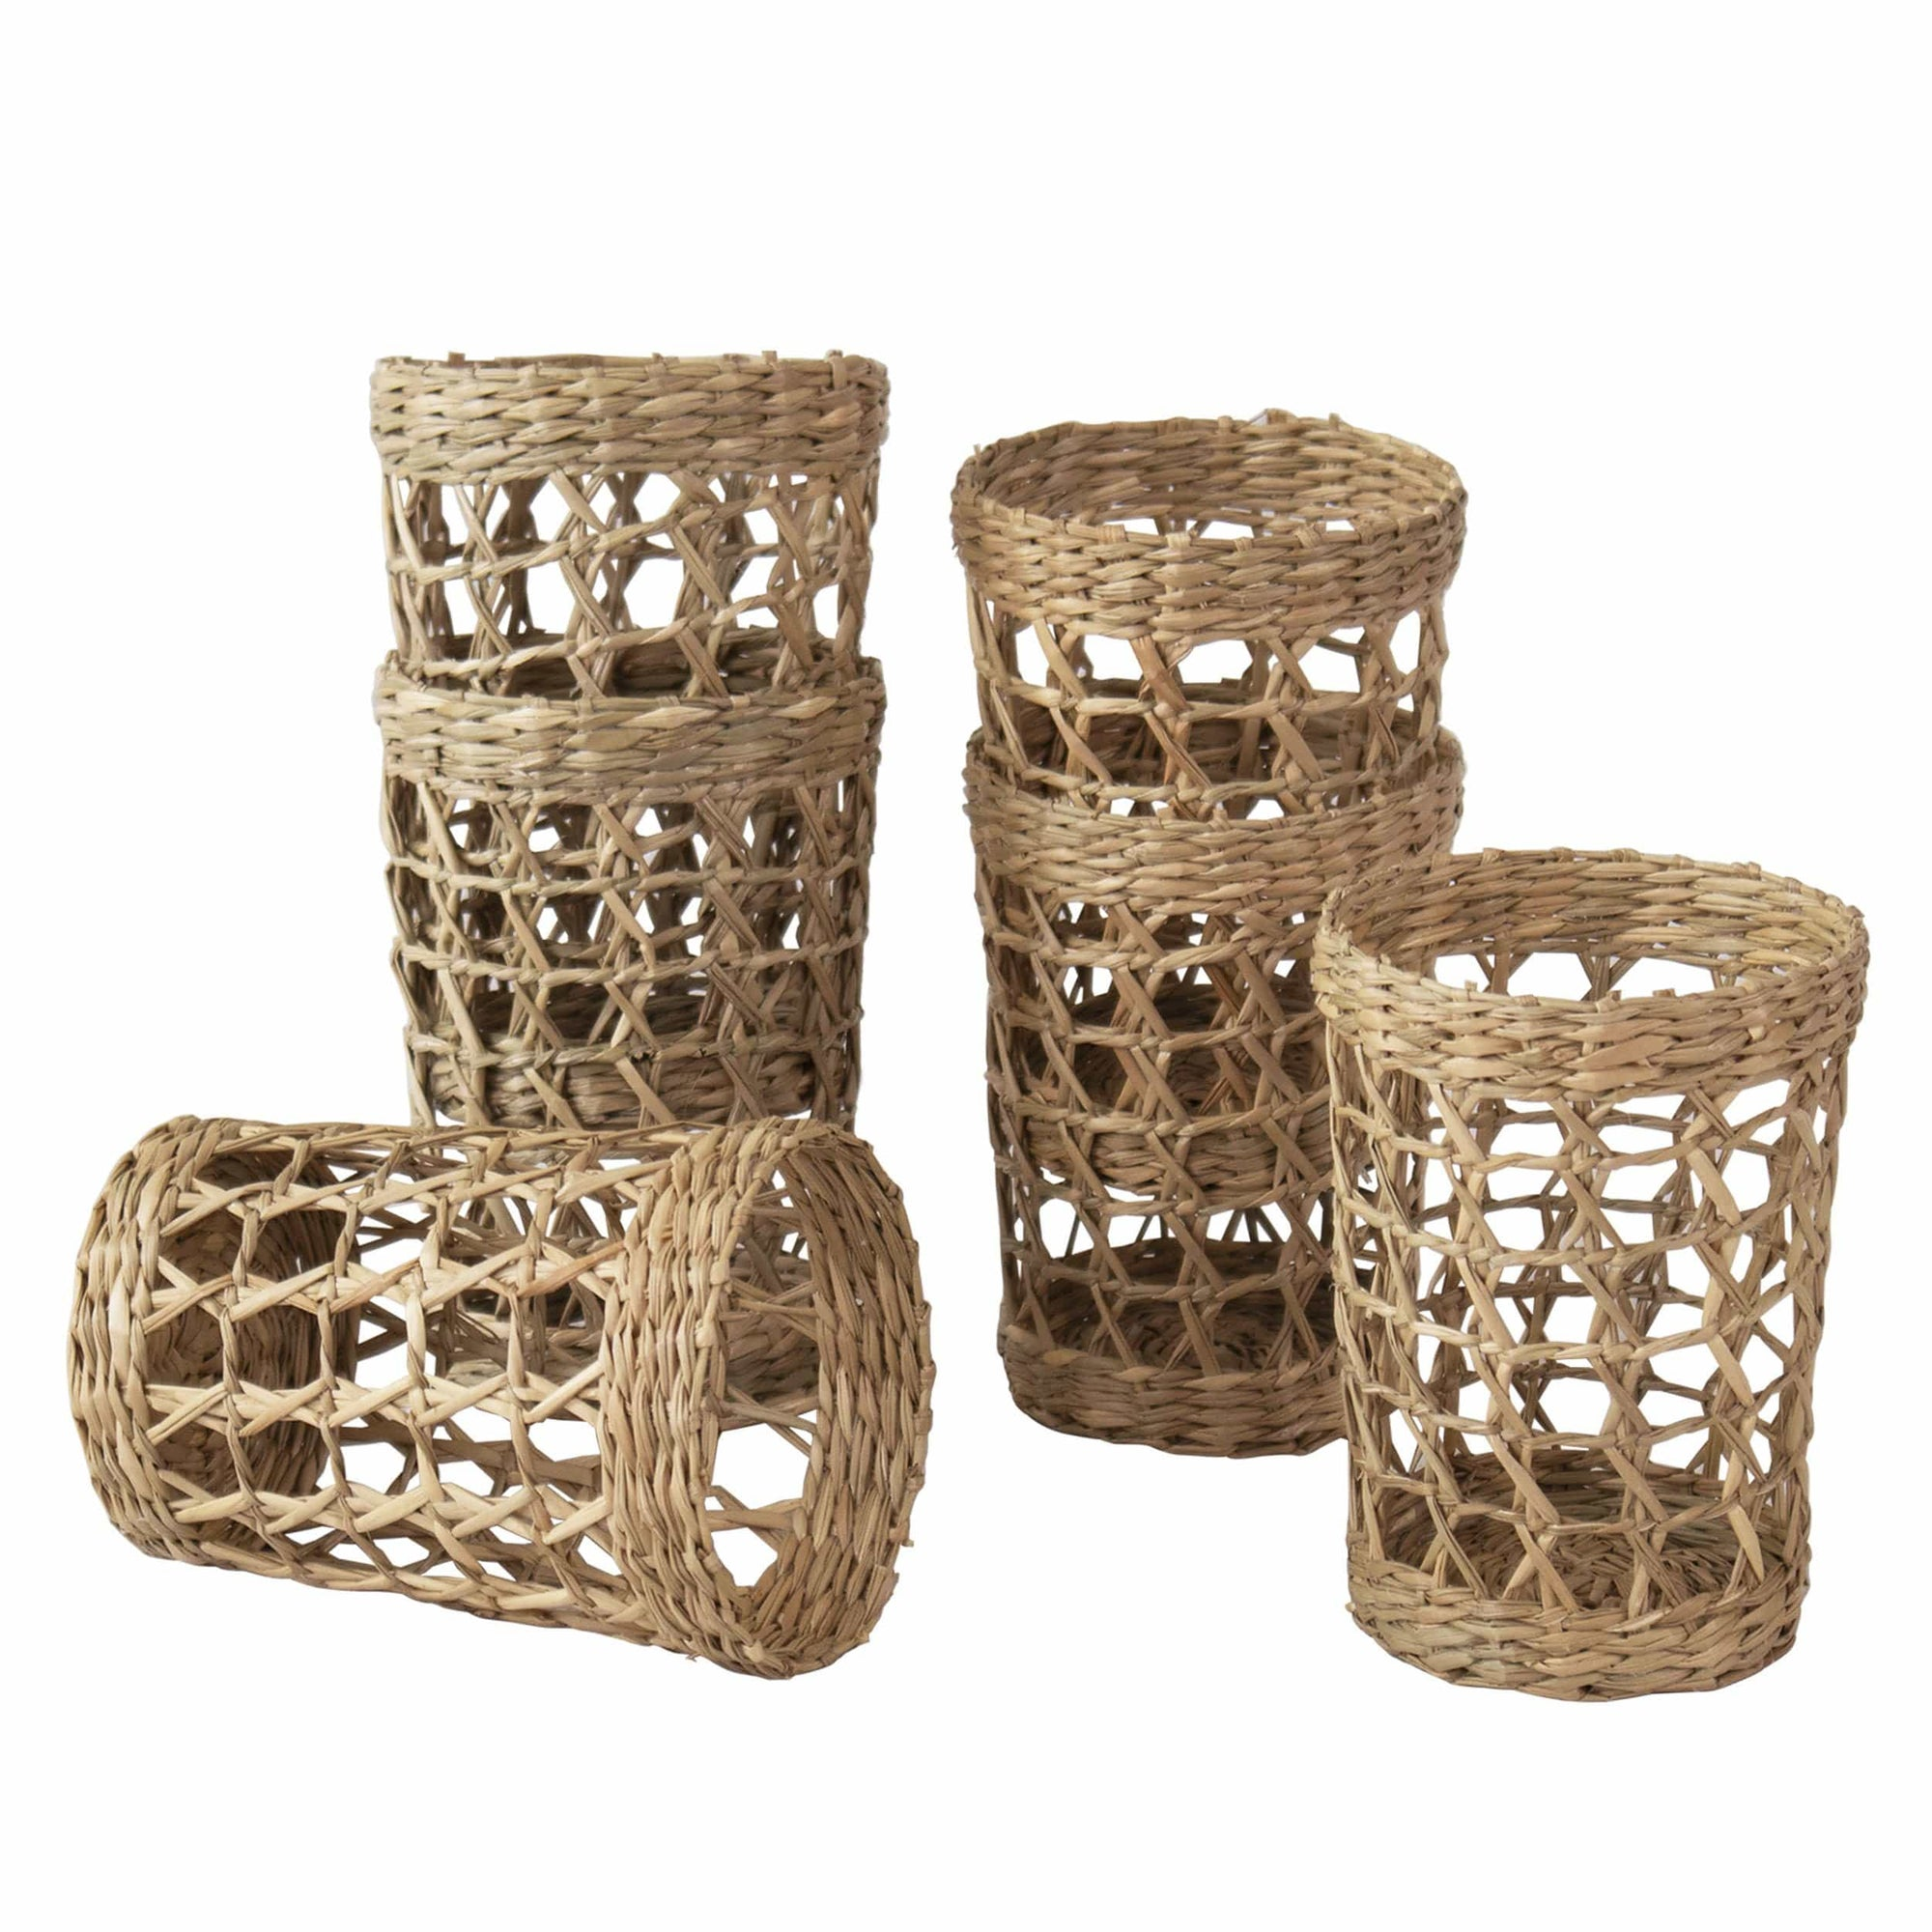 madeterra.uk Glassware Set of 6 Pack Wicker Woven Cup Holders Heat Resistant Hand Woven Drink Glass Cup Holder Chic Rustic Countryside Dining Table Kitchen Decor  (No glass cup)